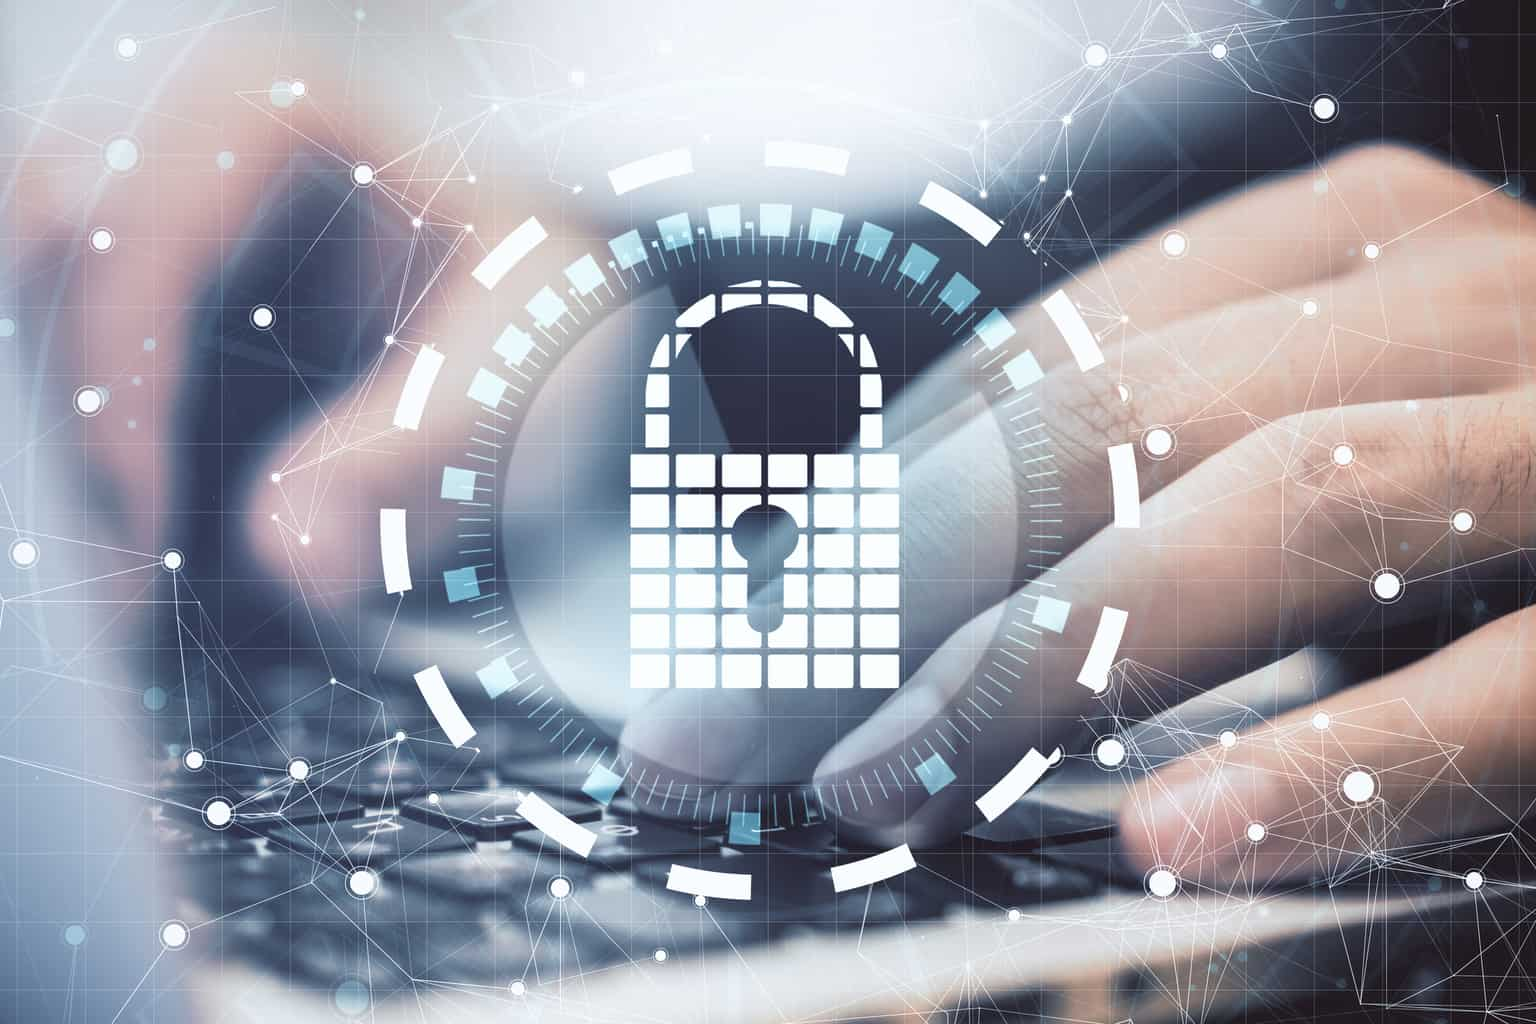 Close up of hands using laptop with digital padlock interface on desktop and blurry background. Safety and protection concept. Multiexposure